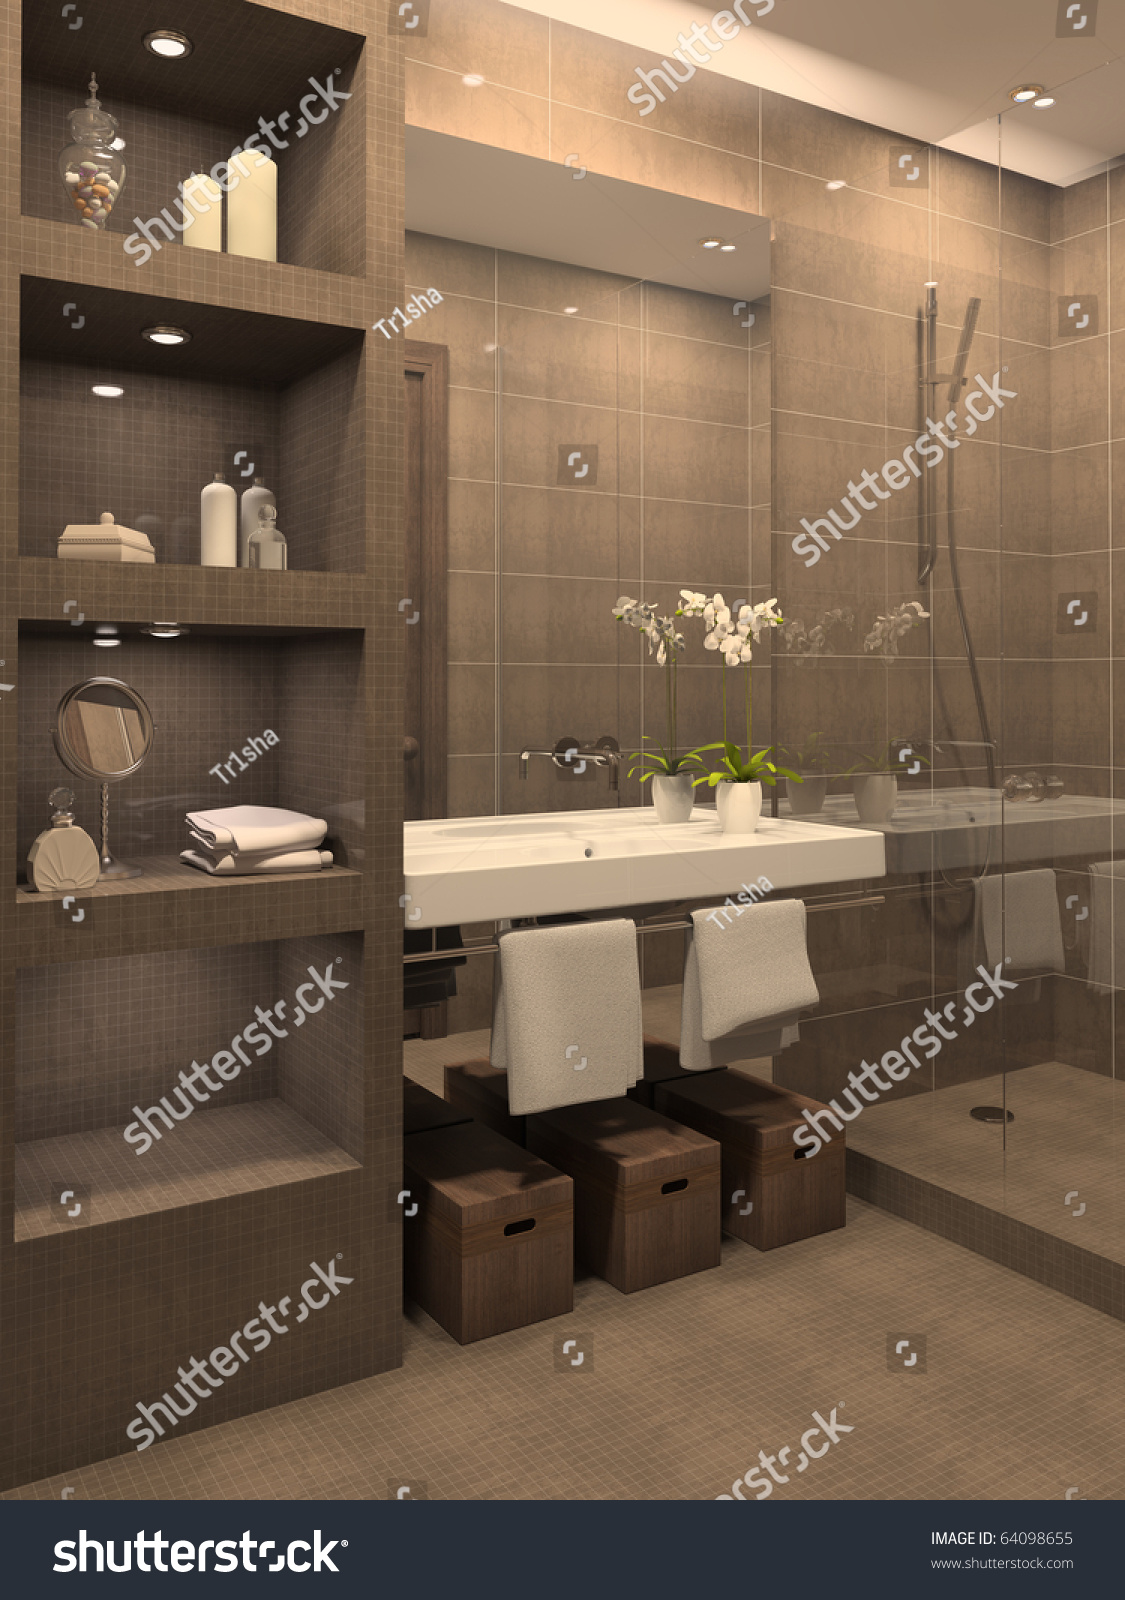 Modern bathroom interior 3d render stock photo 64098655 for Bathroom interior images